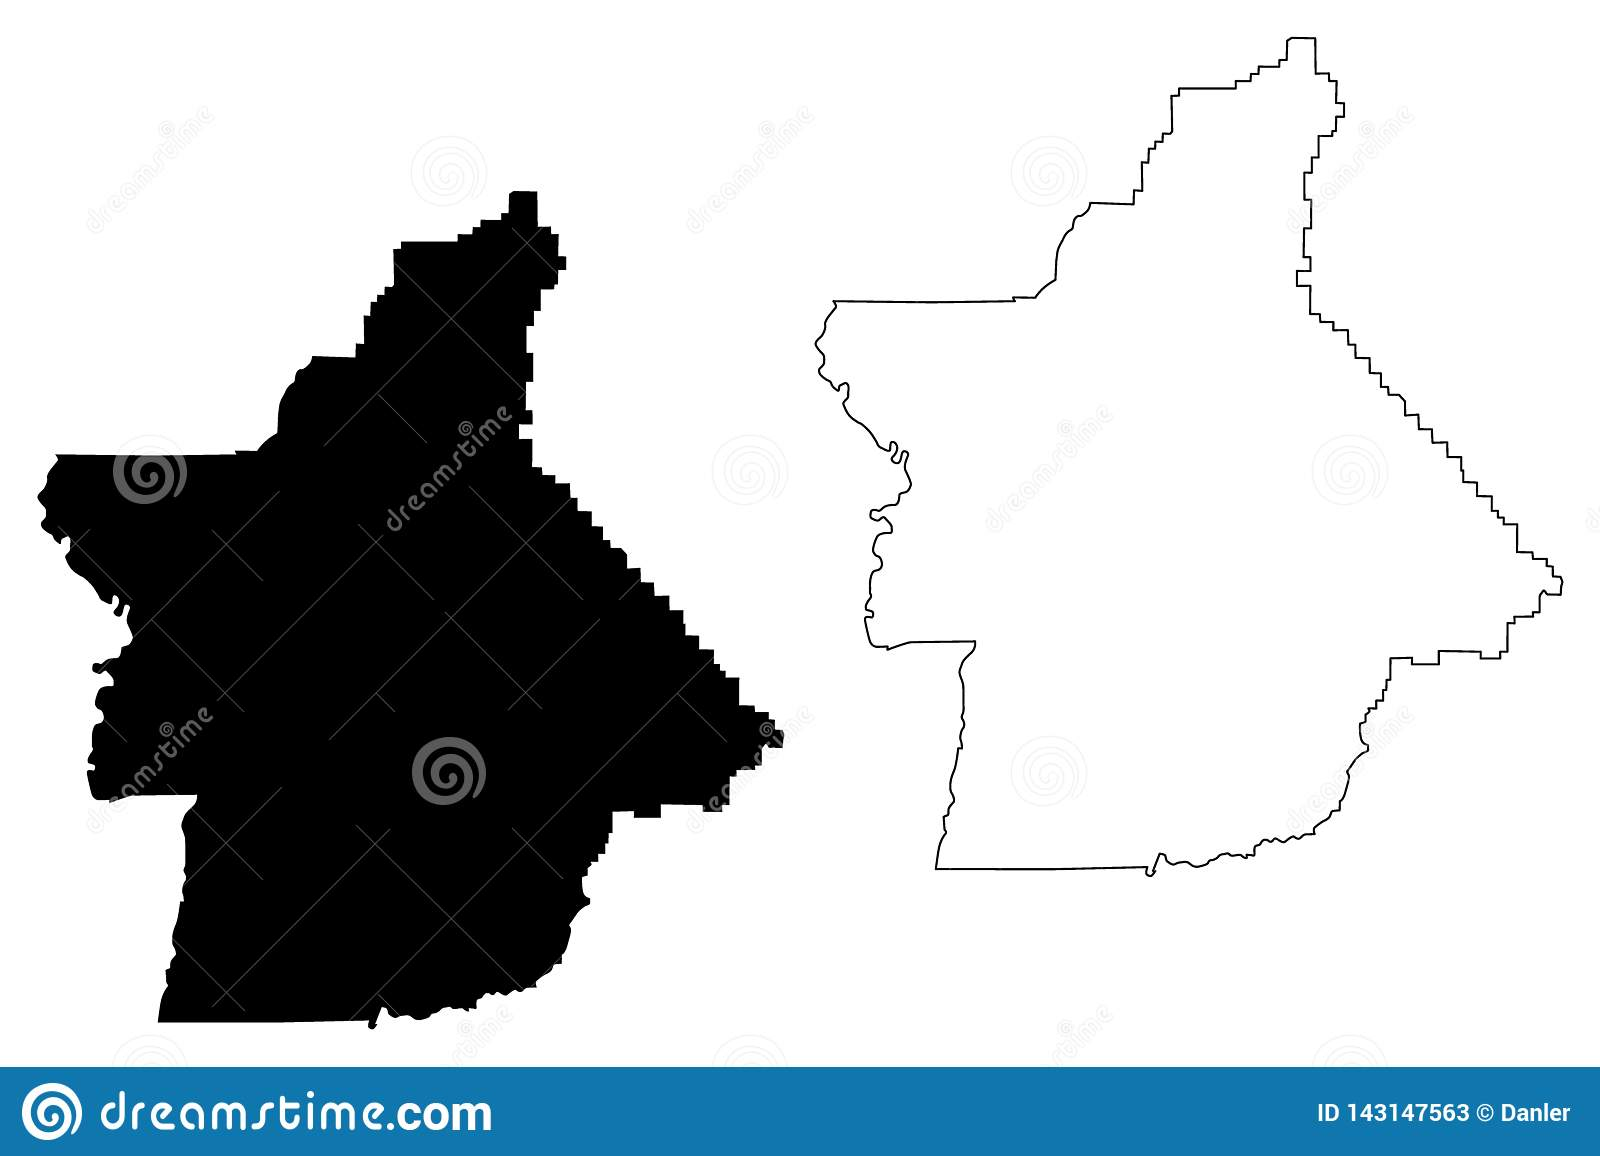 Counties In California Map.Butte County California Map Vector Stock Vector Illustration Of